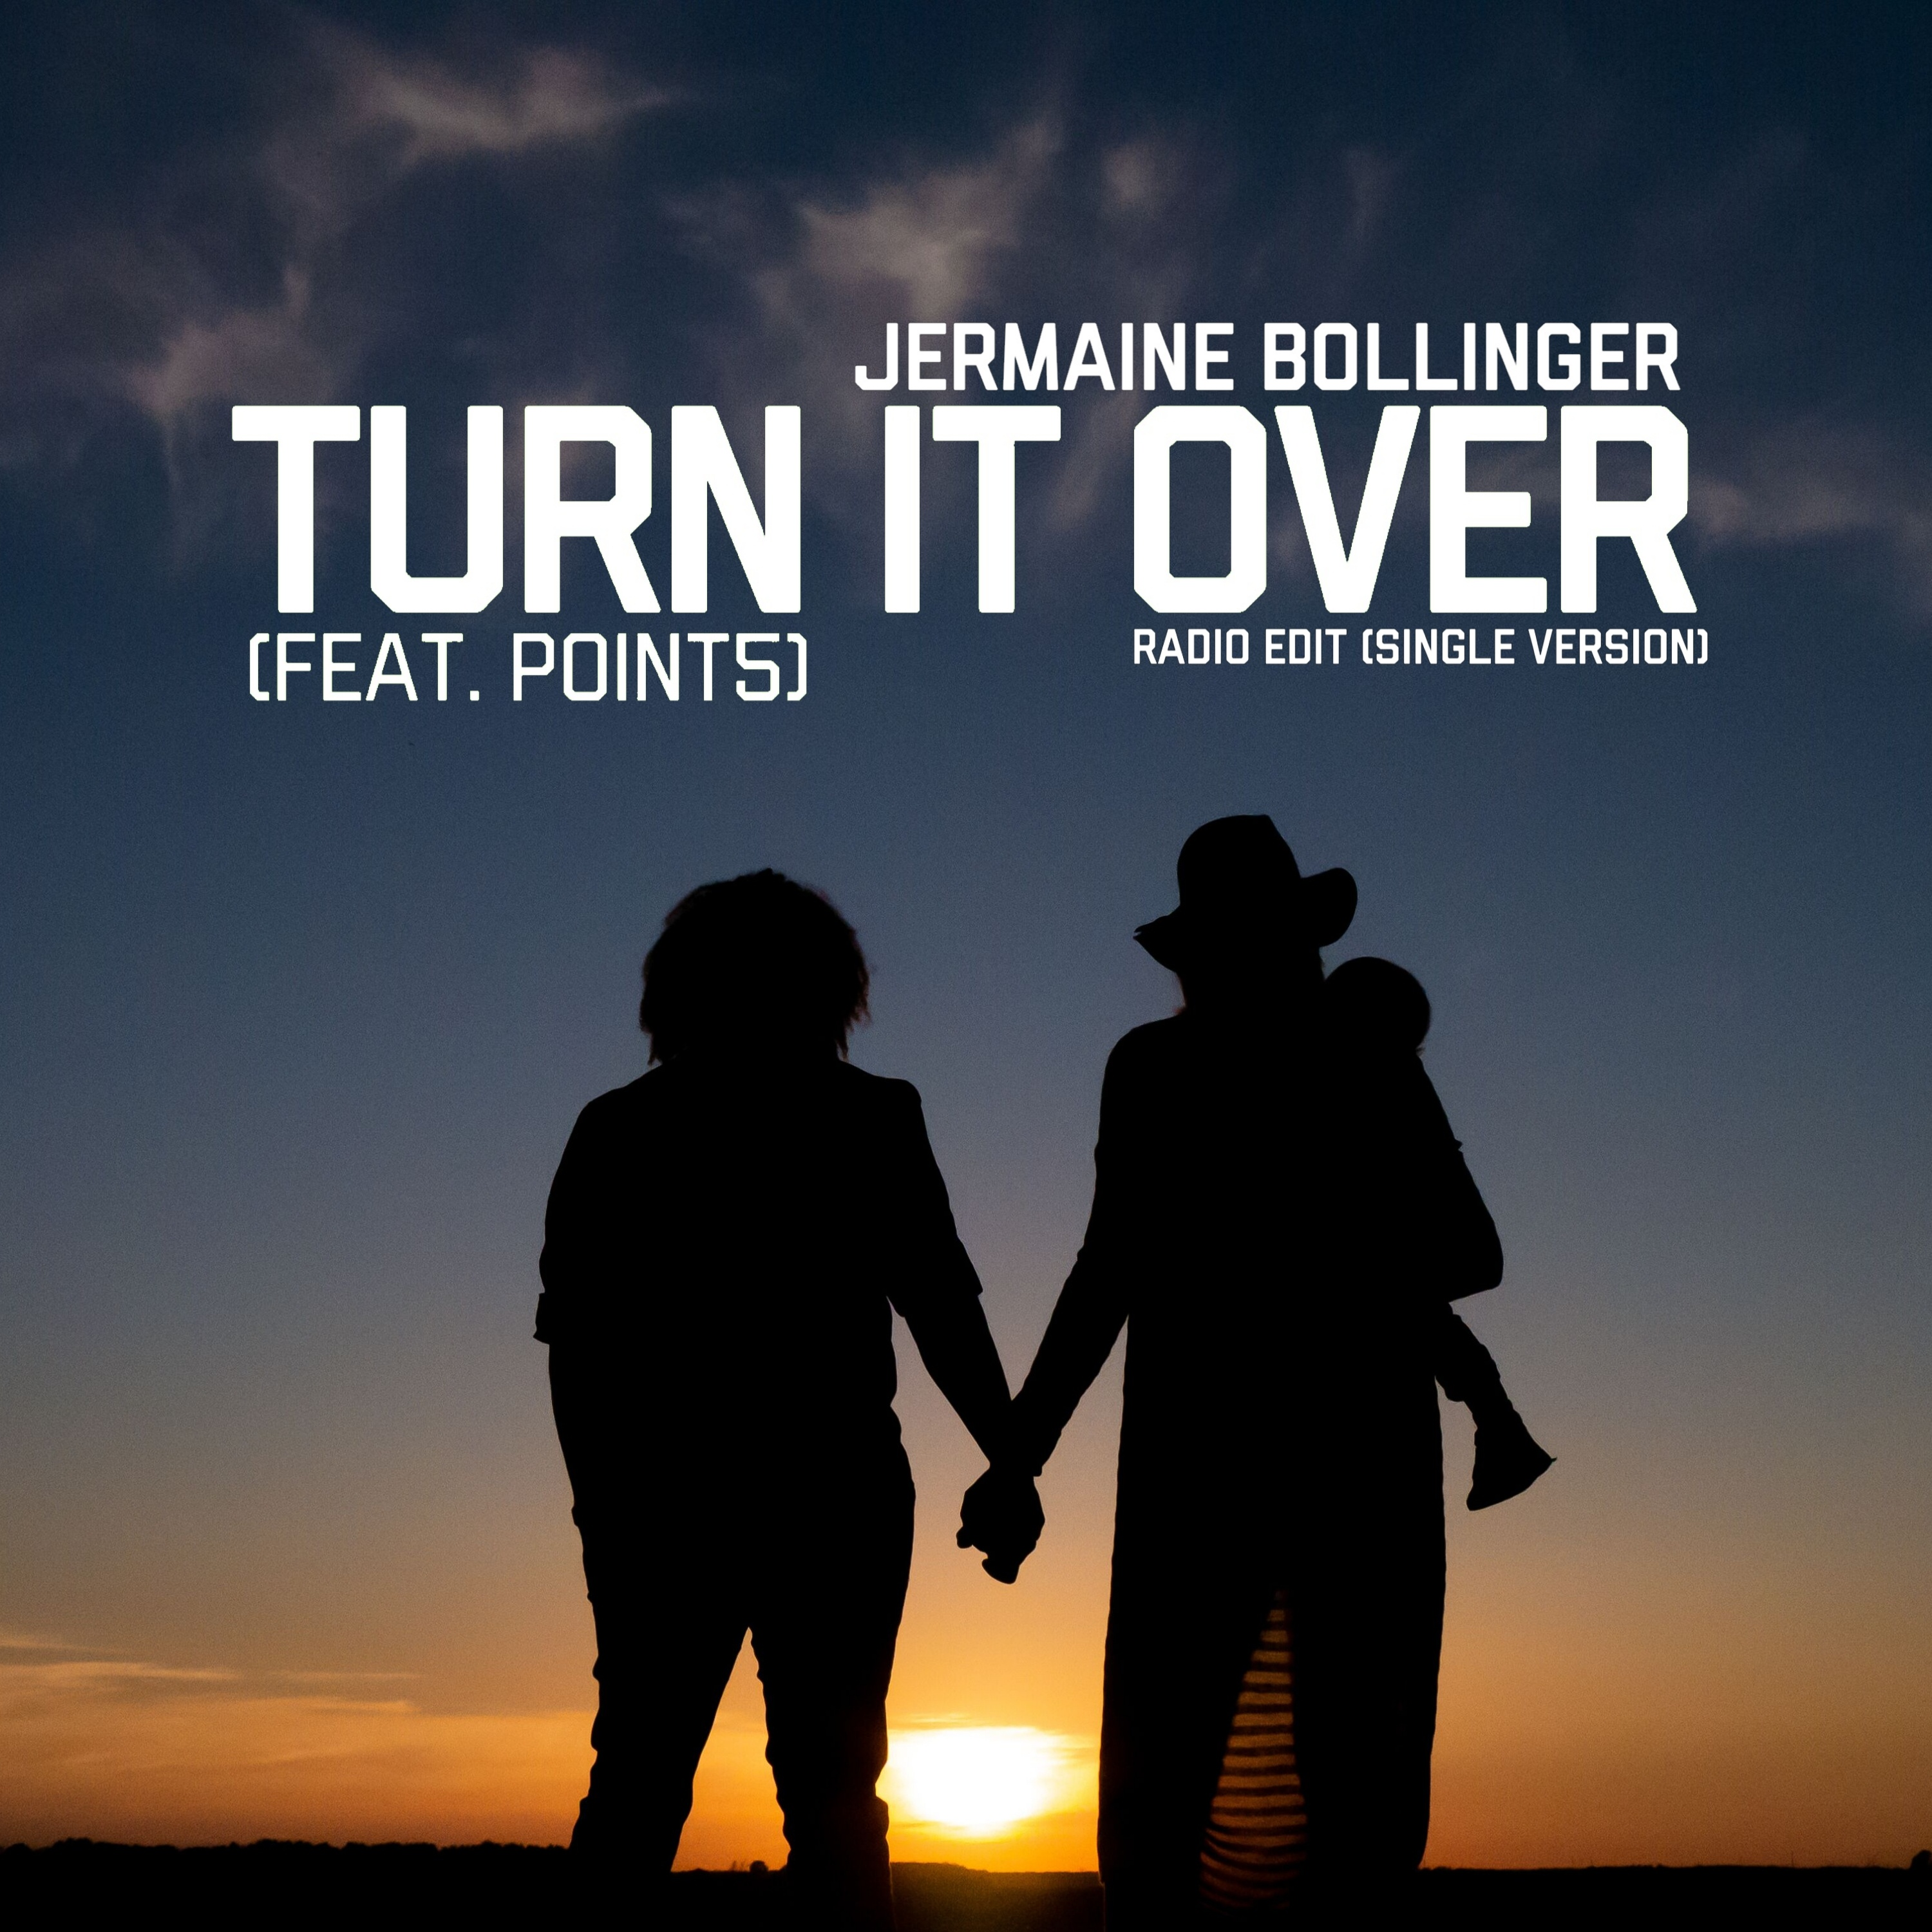 NEW SINGLE RELEASED TODAY FROM JERMAINE BOLLINGER